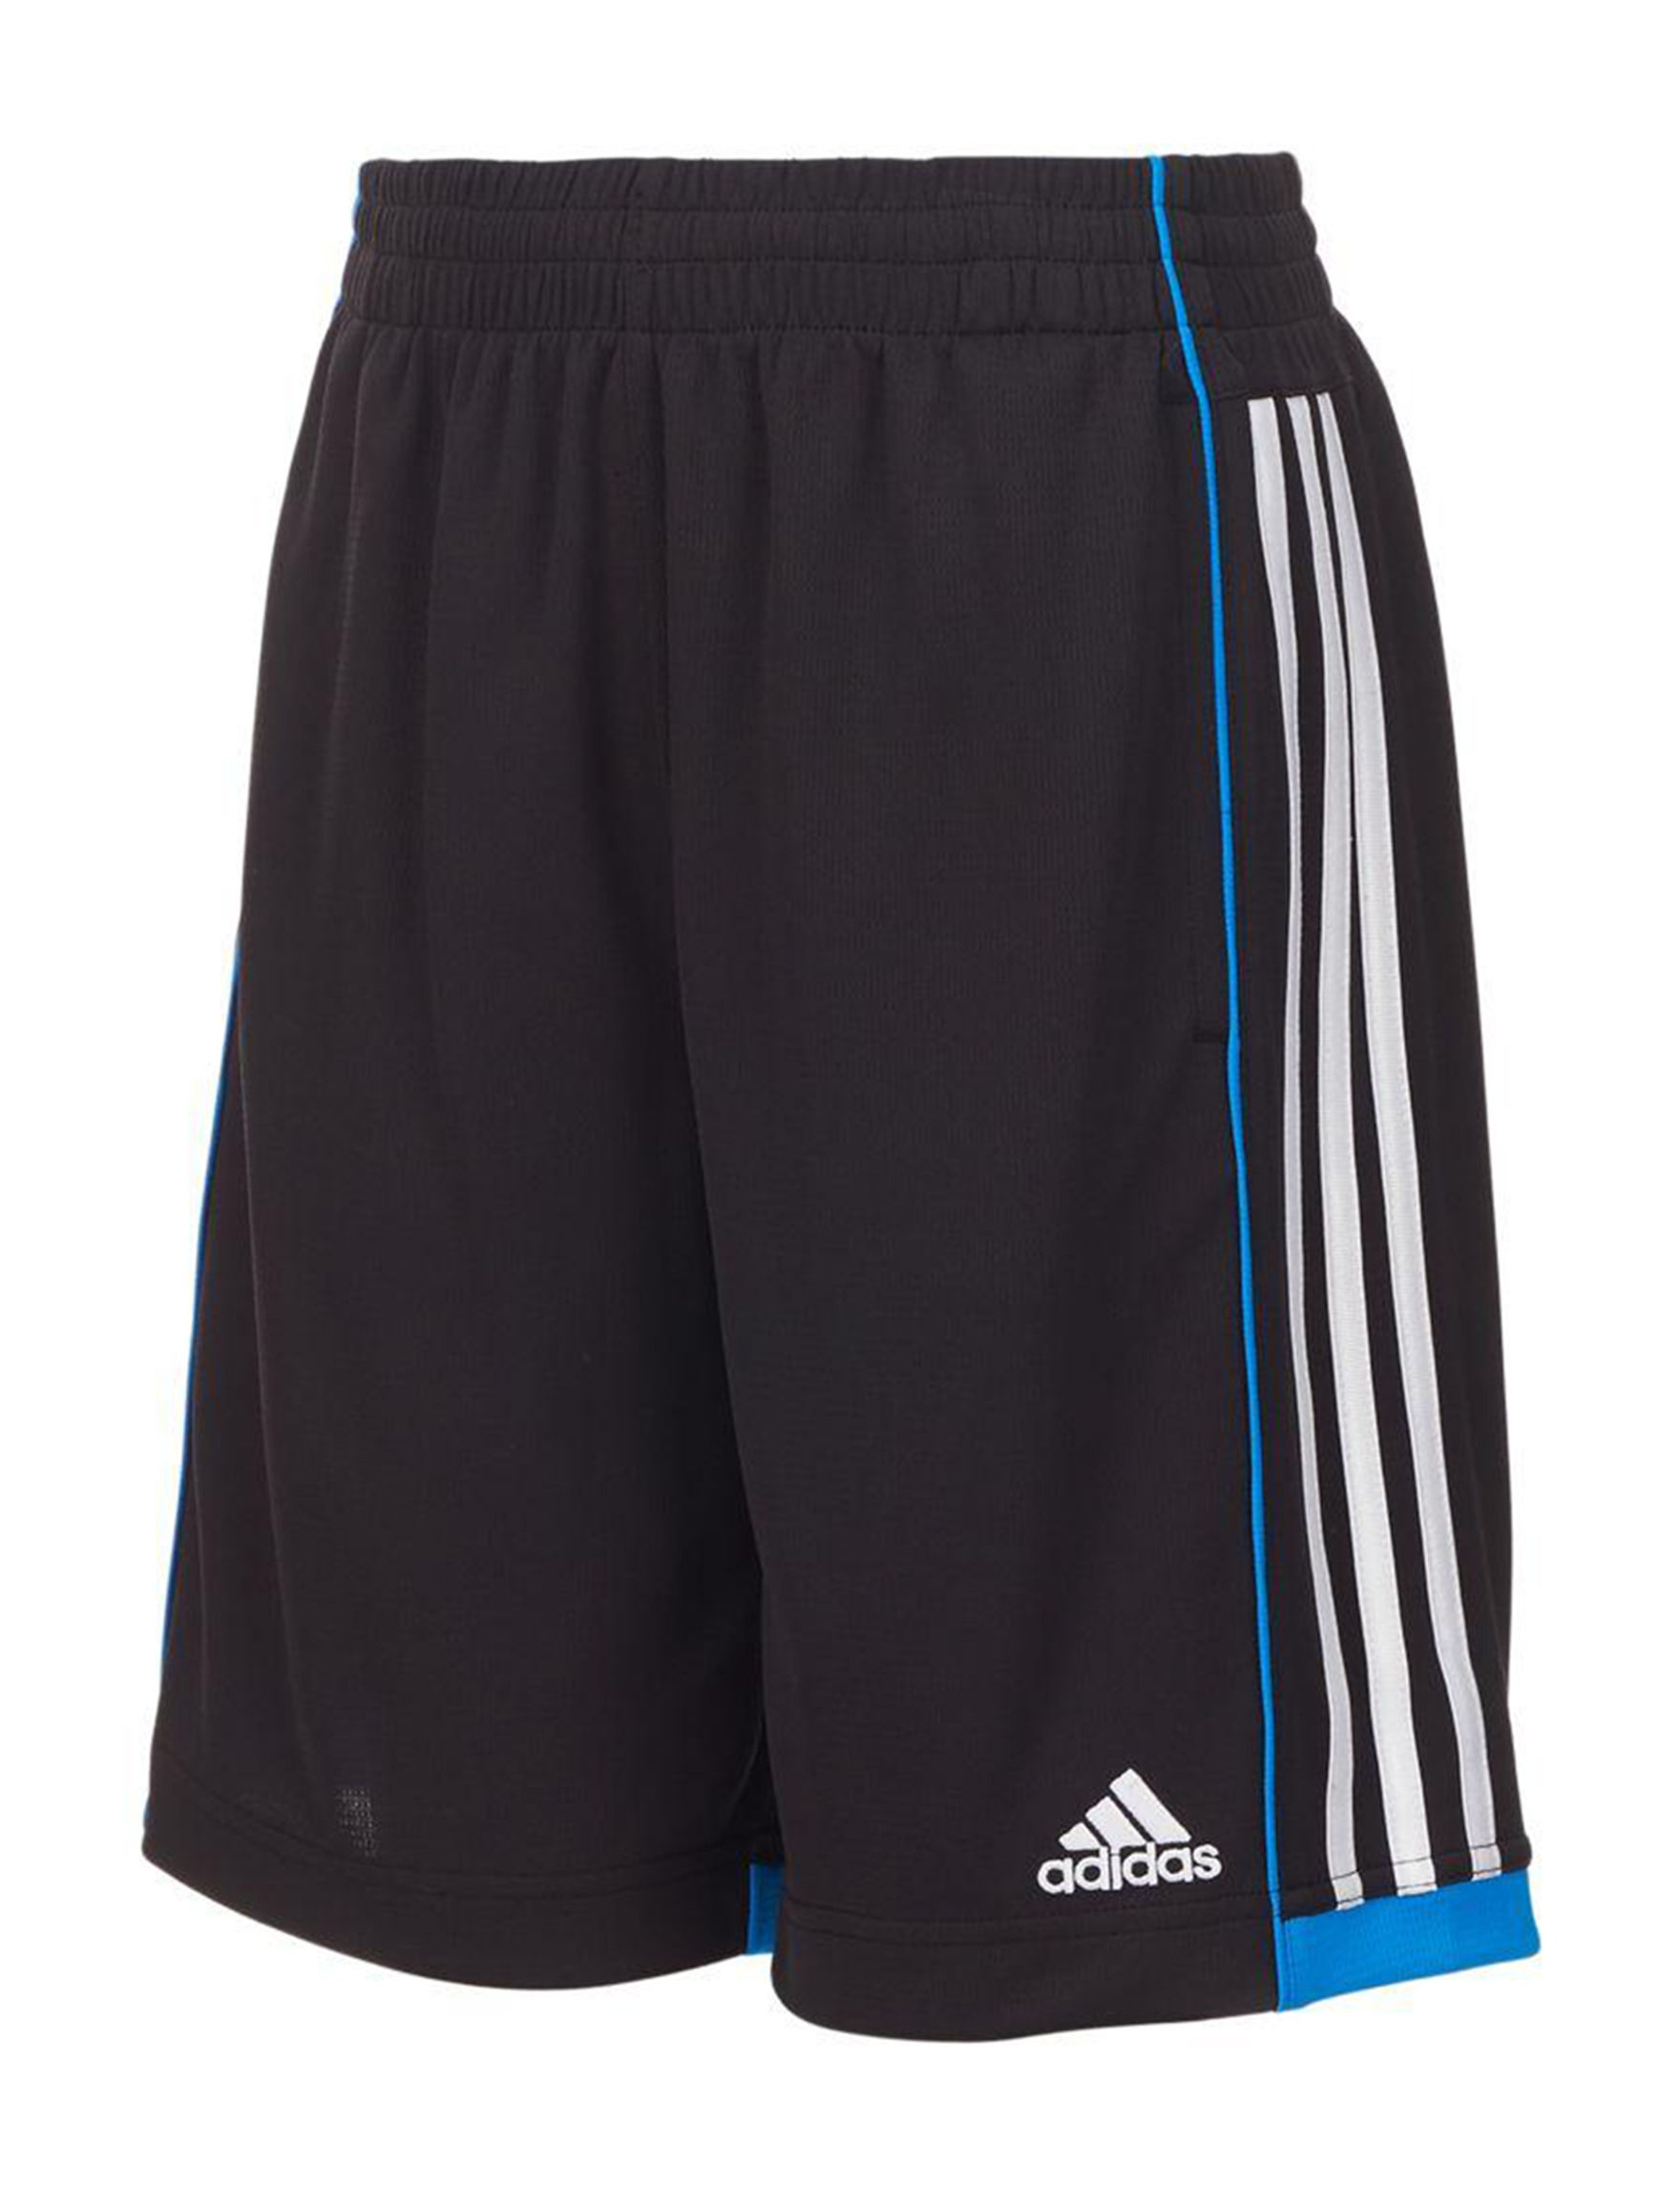 Adidas Black / Blue Relaxed